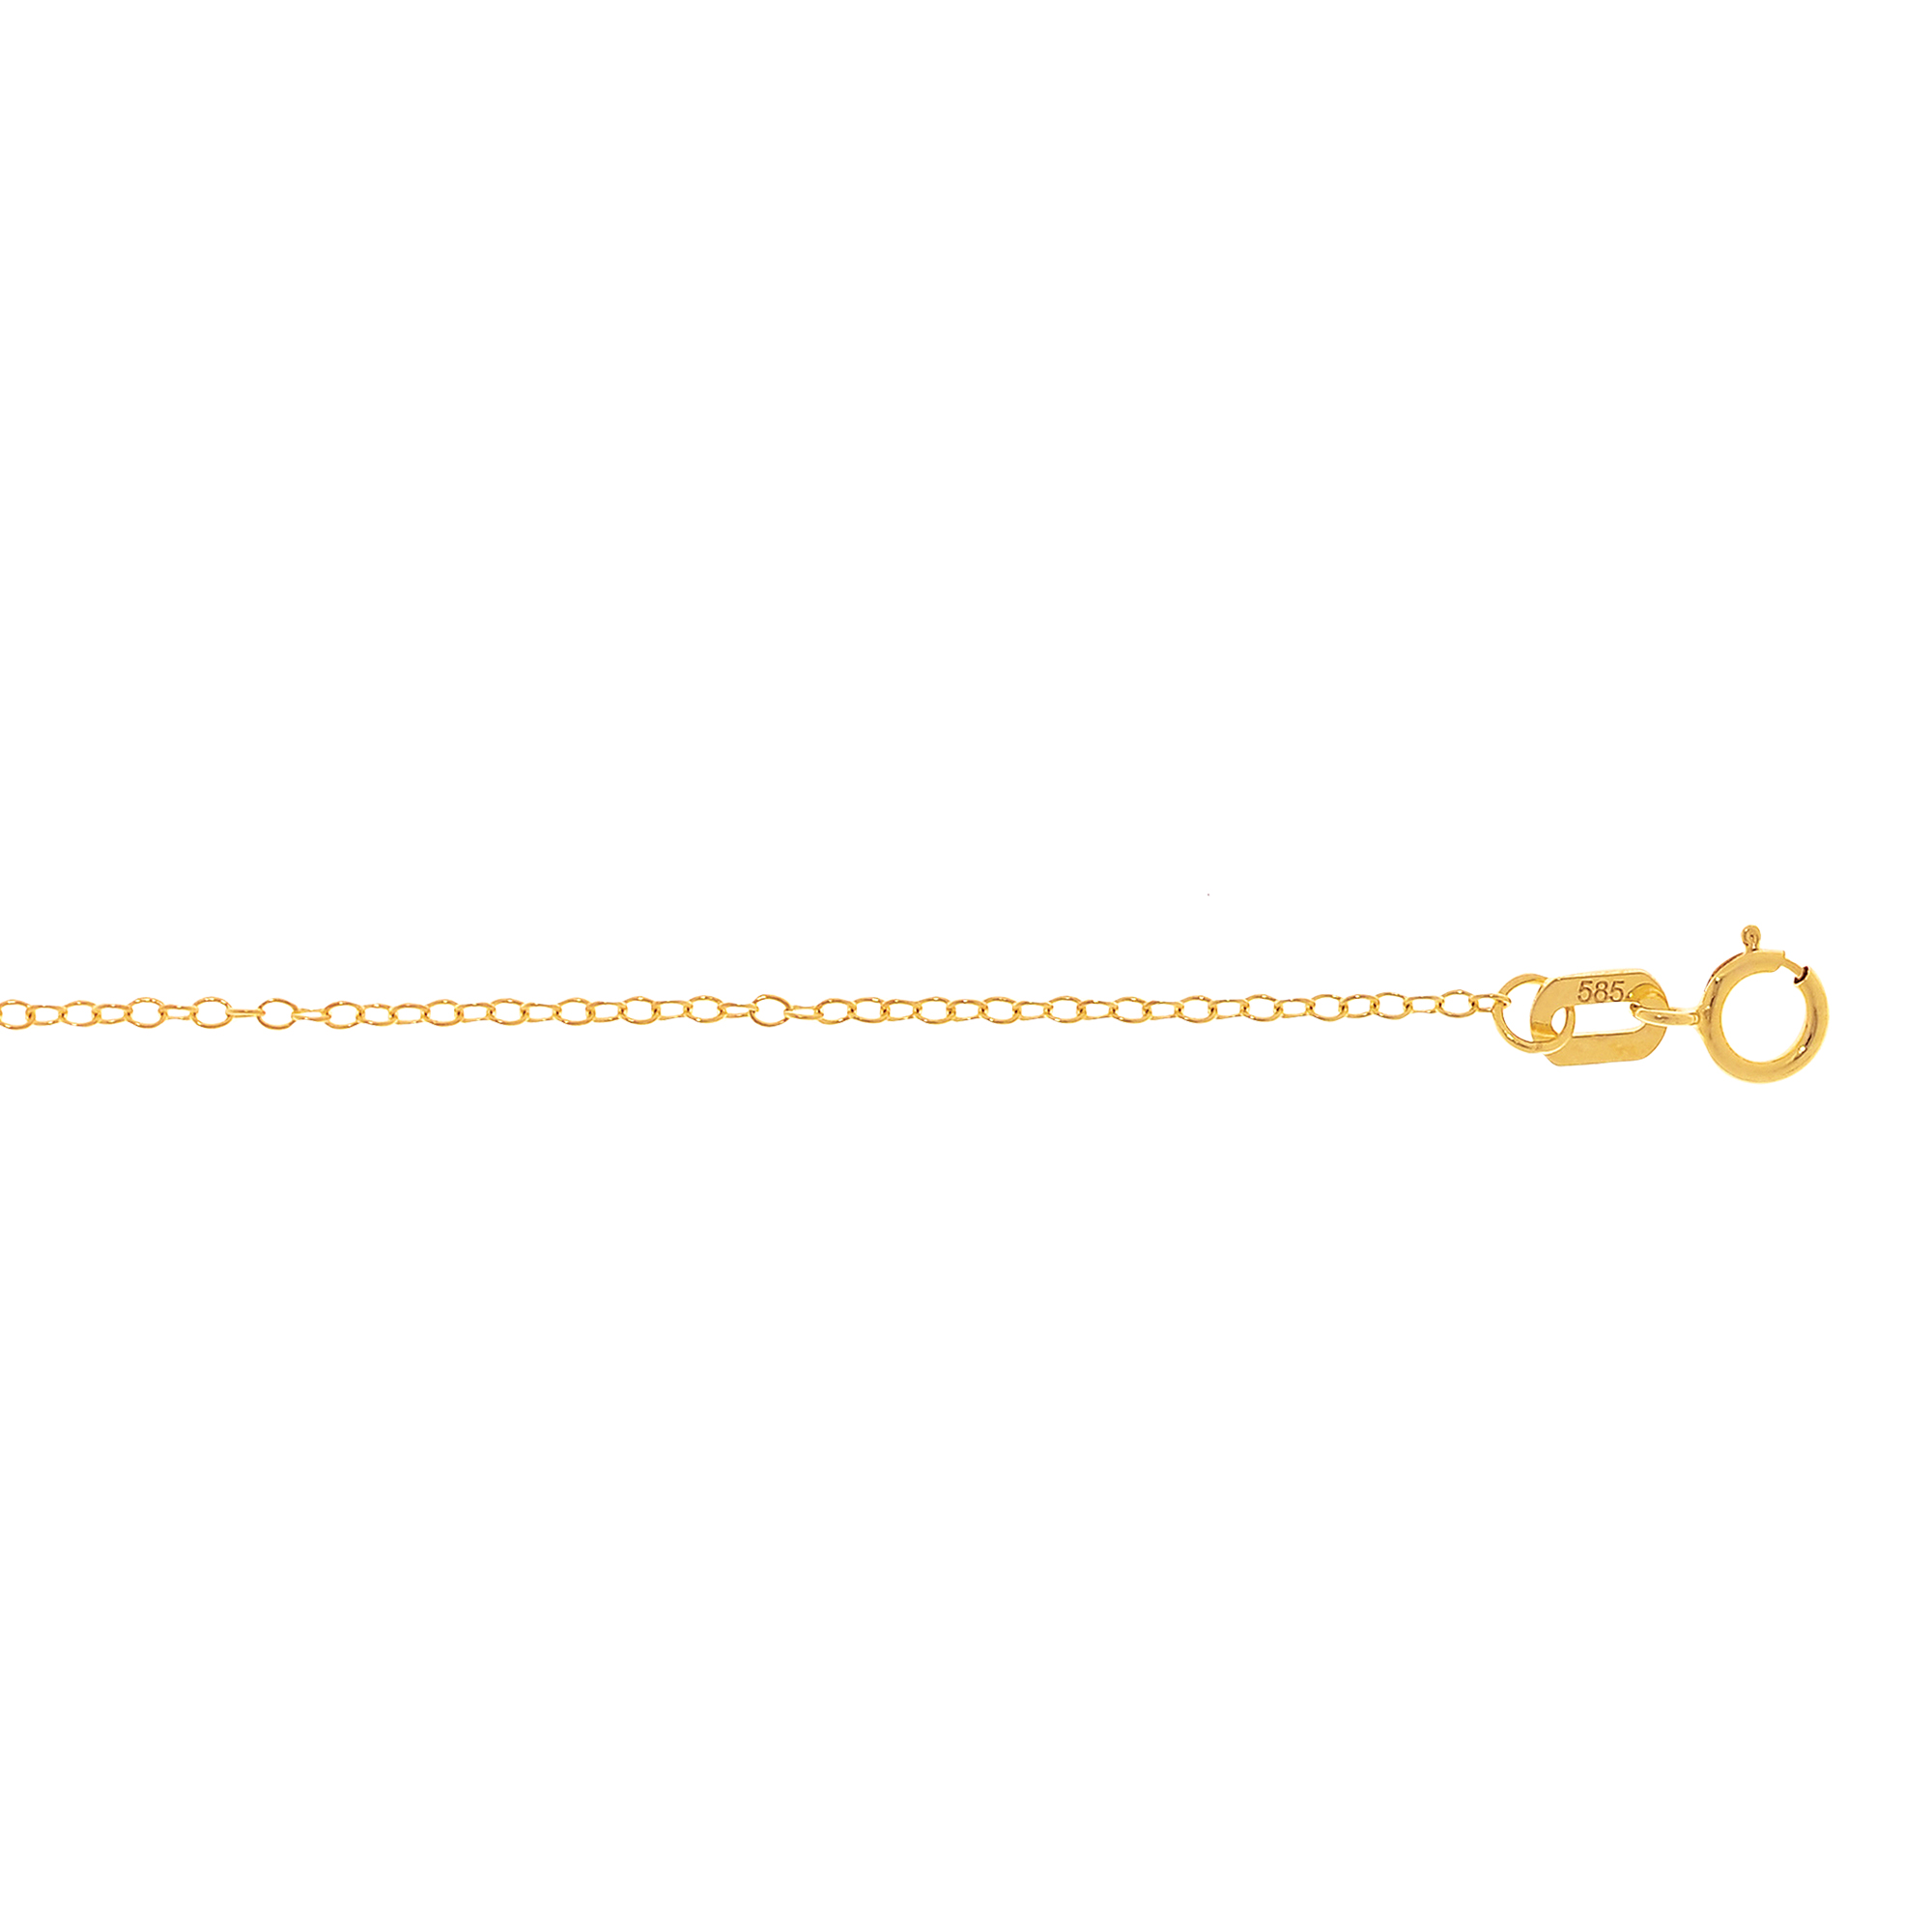 LUXURMAN Solid 14k Gold Cable Chain For Women Round 1.2mm Wide